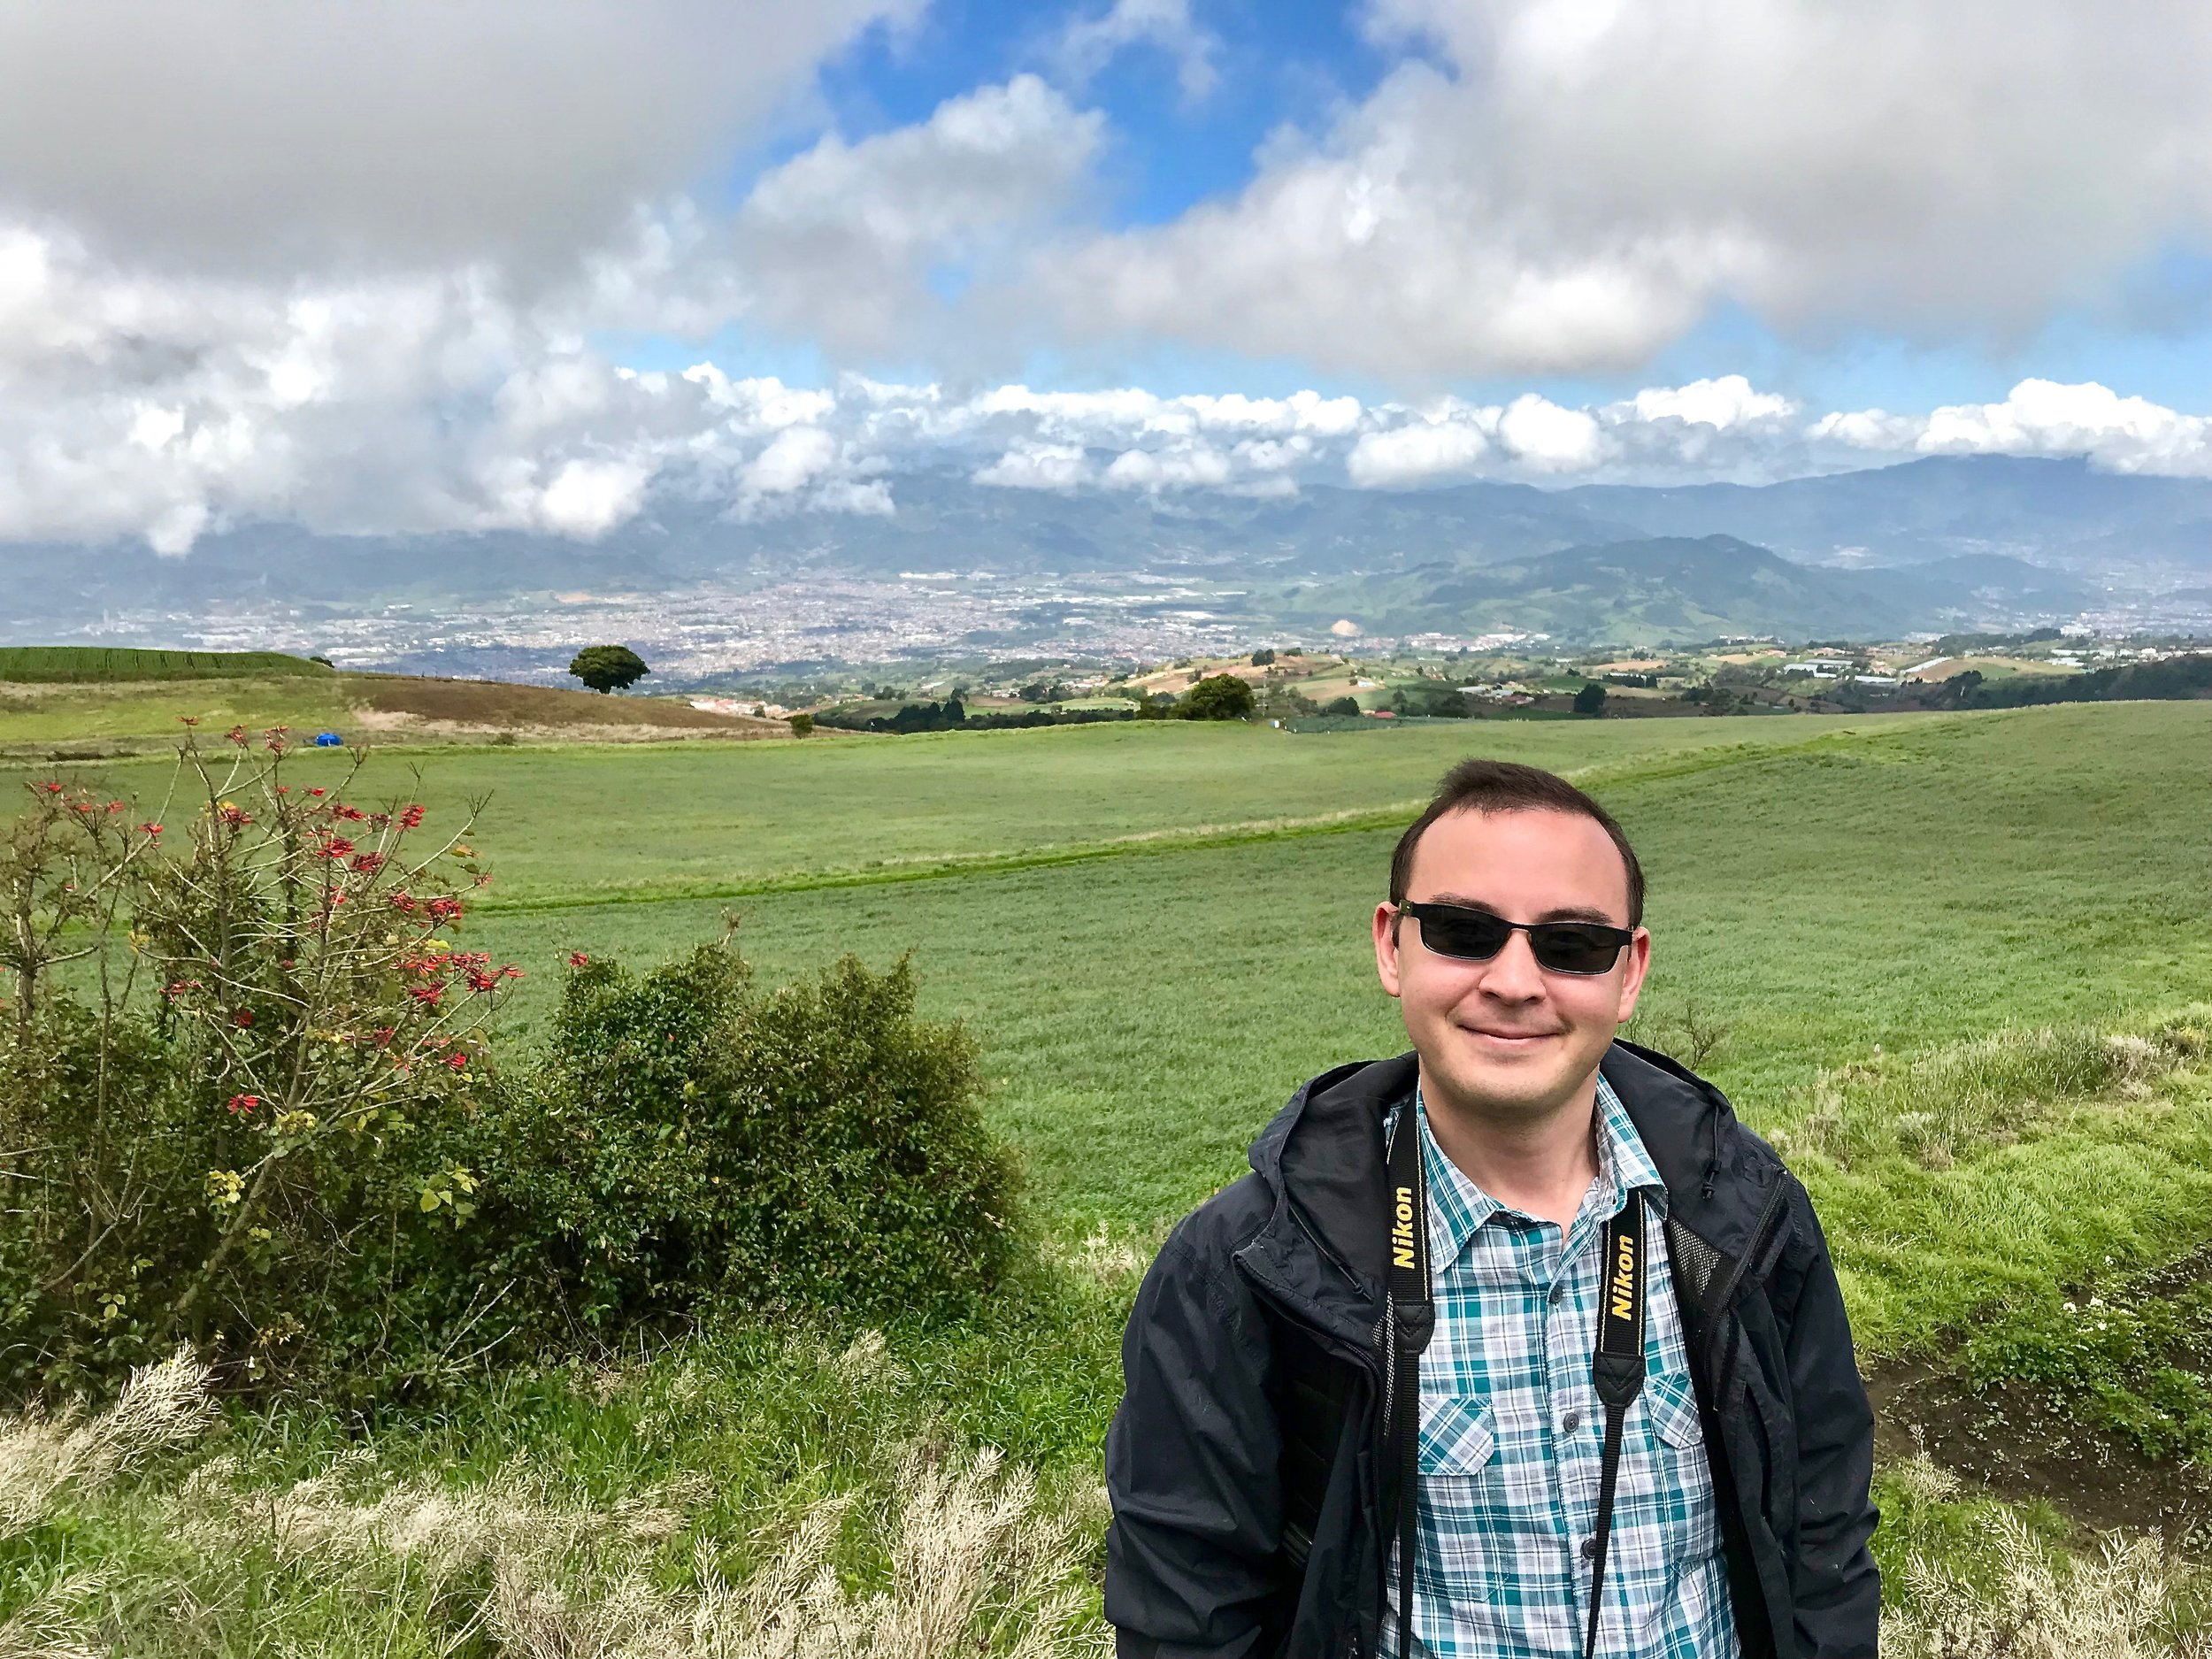 The author with a view of Cartago, Costa Rica